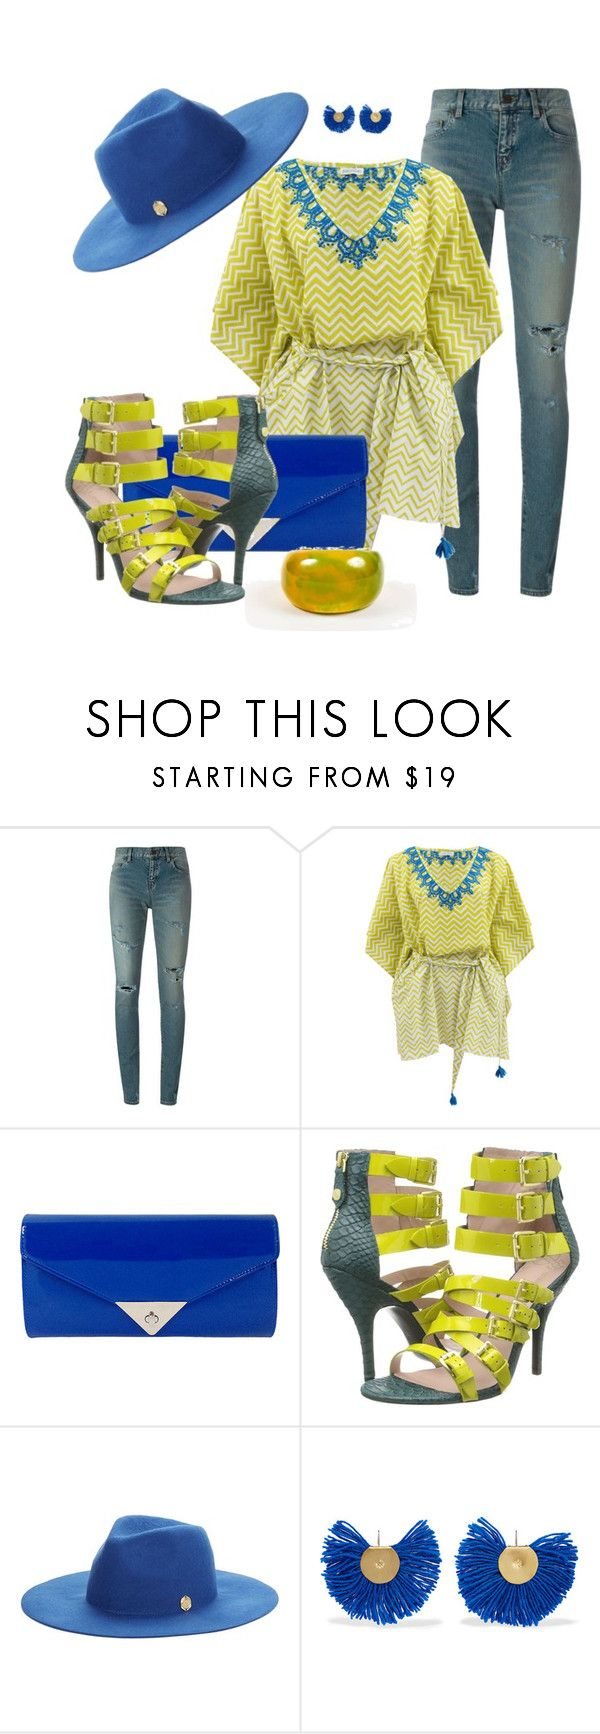 """WEEKEND GURL by DaNewMeh"" by thchosn ❤ liked on Polyvore featuring Yves Saint Laurent, Banjanan, JNB, Vivienne Westwood, Vince Camuto and Katerina Makriyianni"